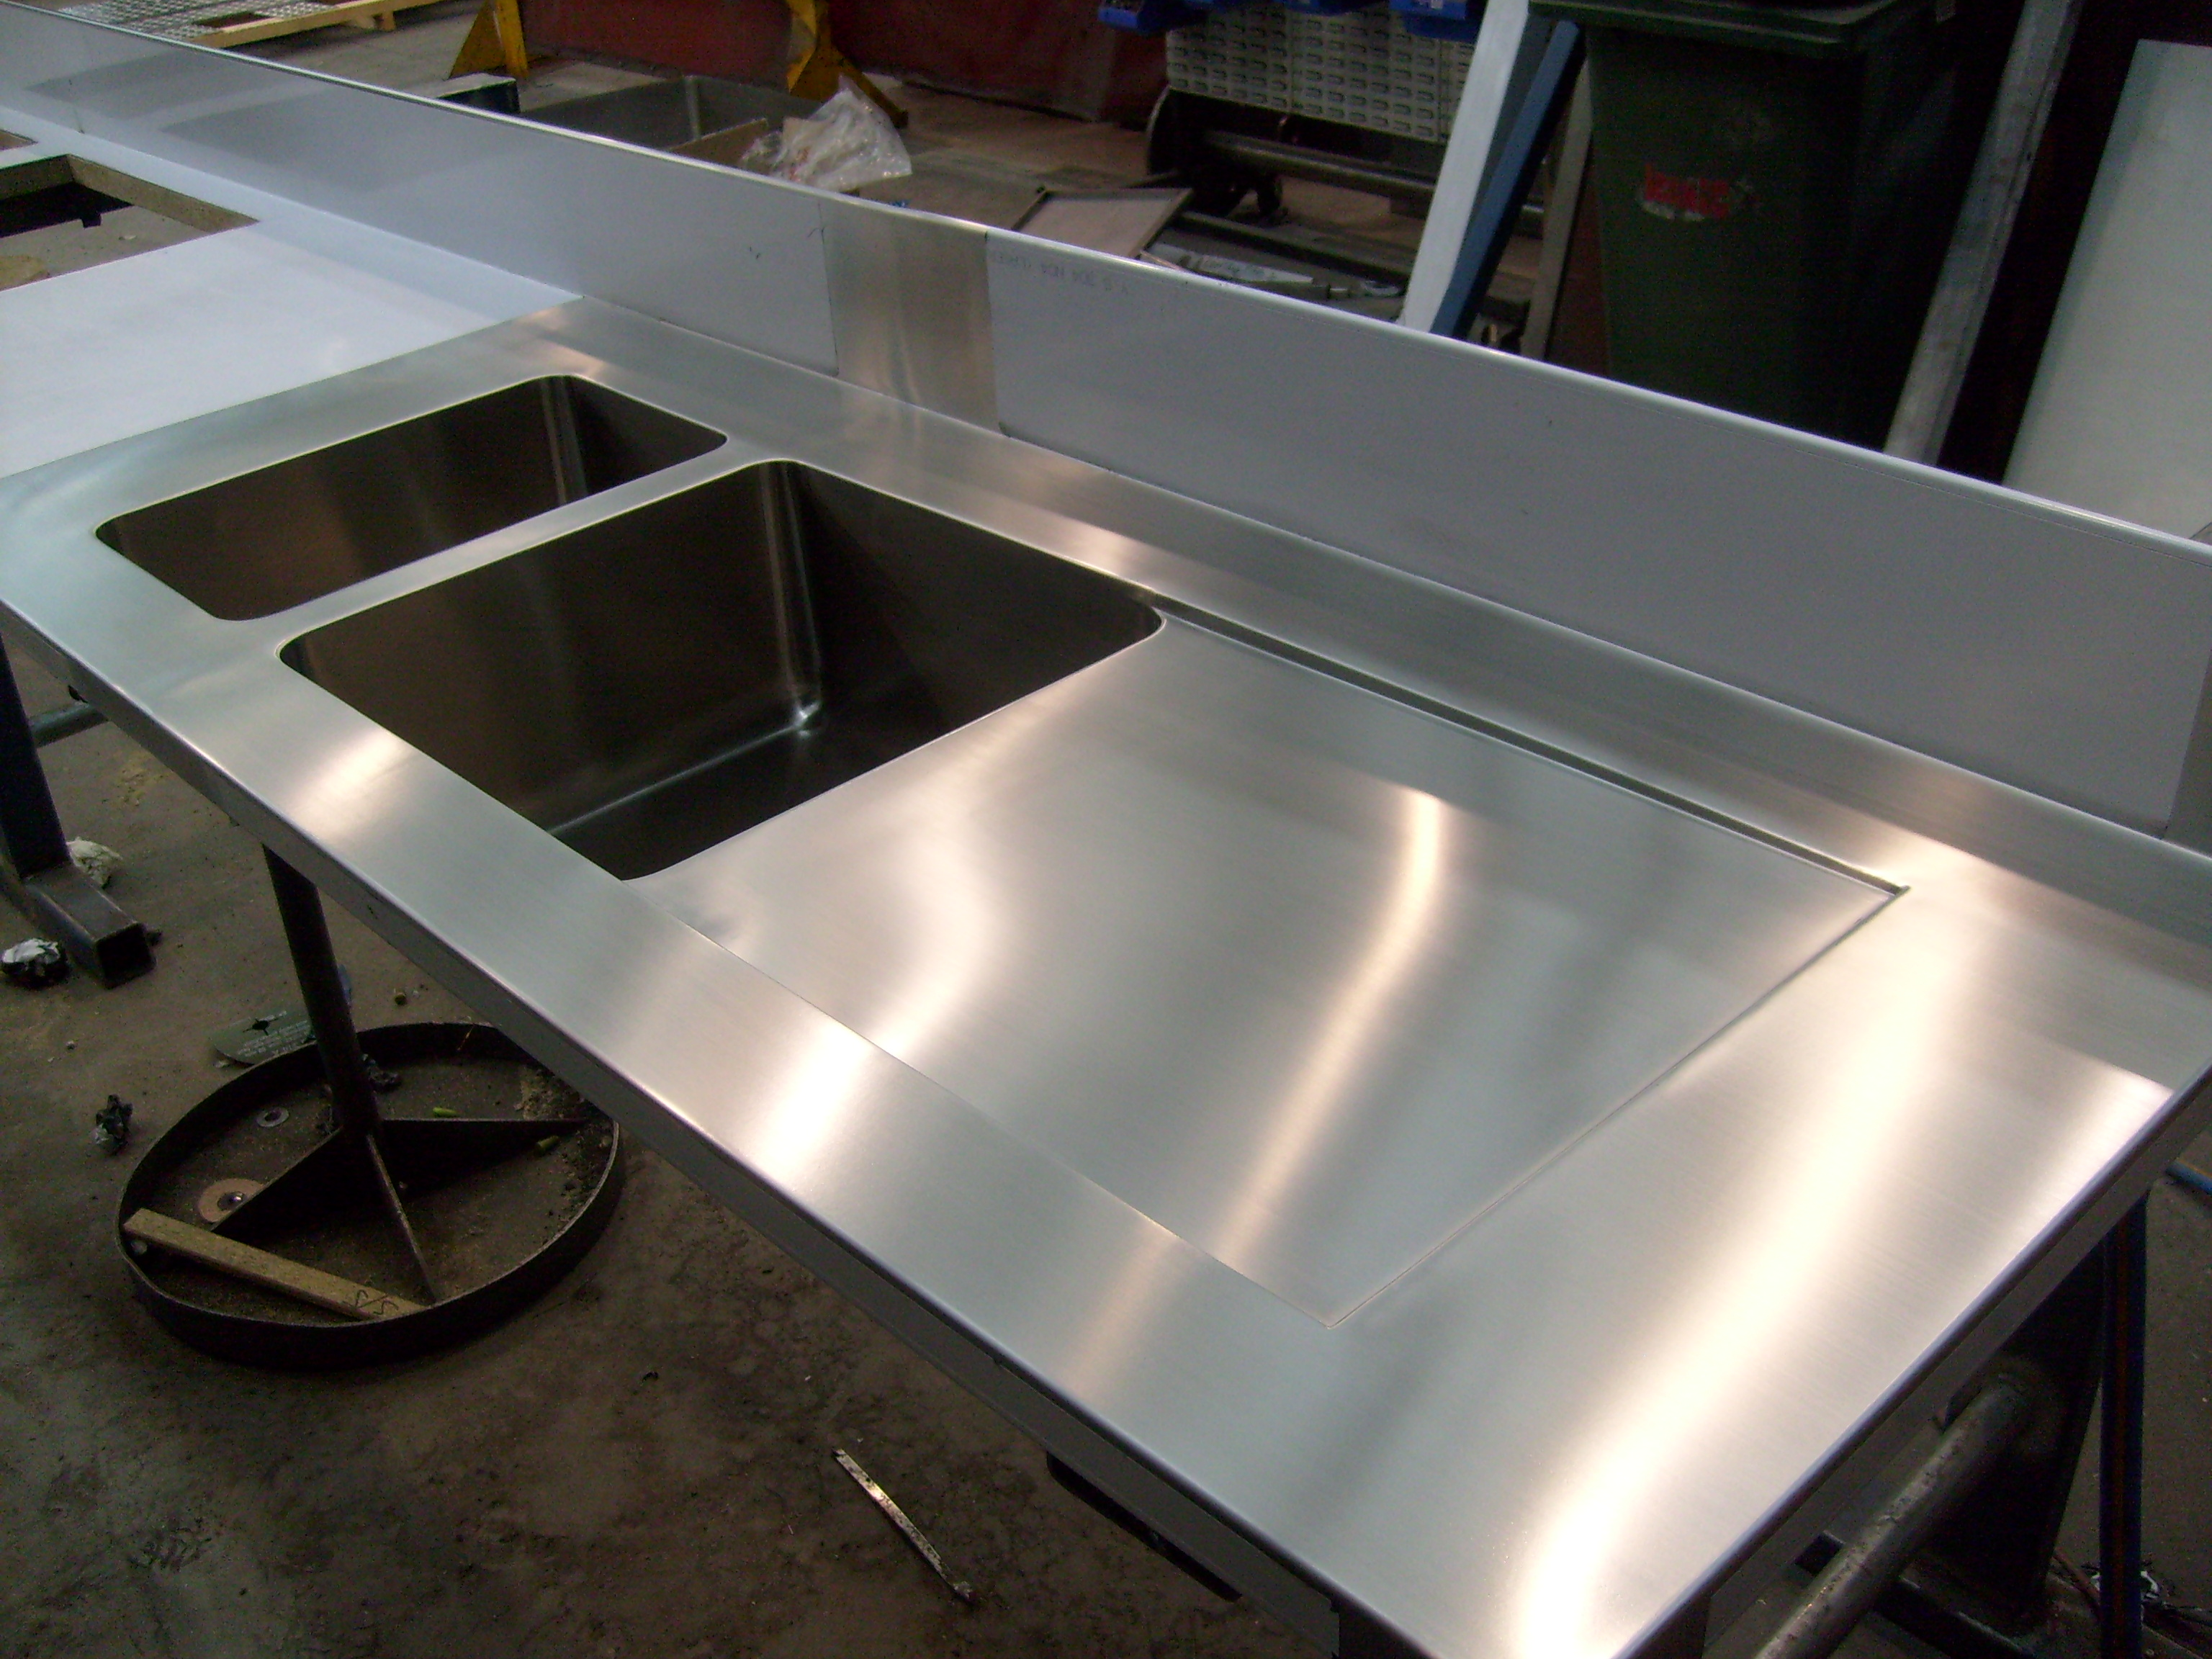 Buy a Commercial Stainless Steel Sink or Bowl in Melbourne